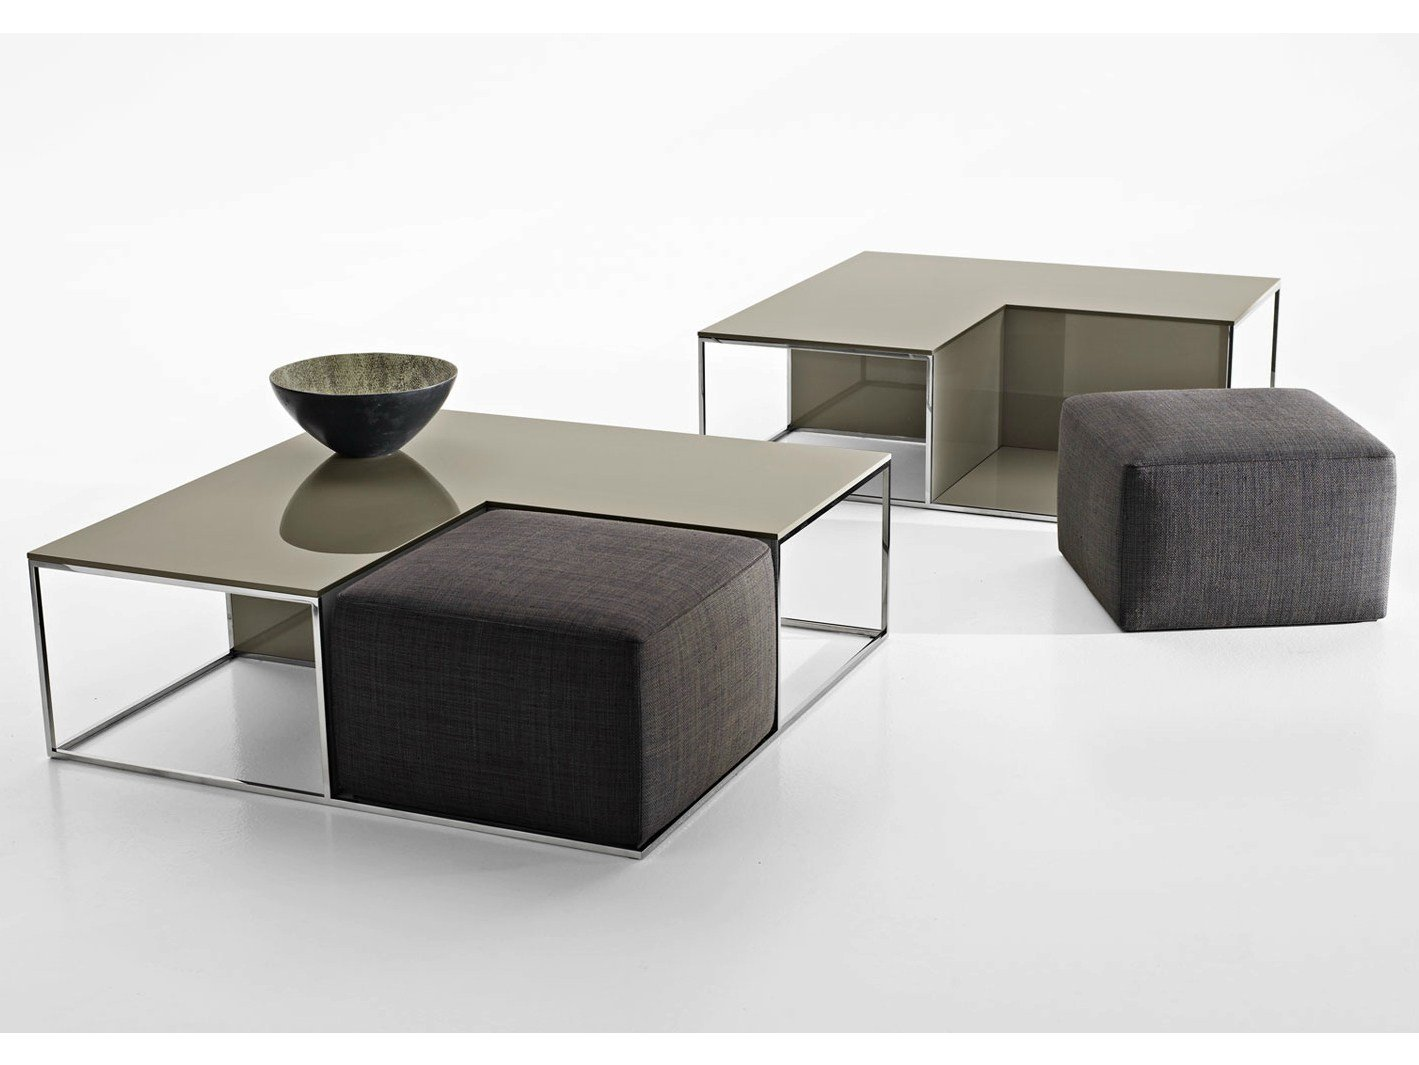 Pouf table basse area by b b italia design paolo piva - Table de salon avec pouf ...